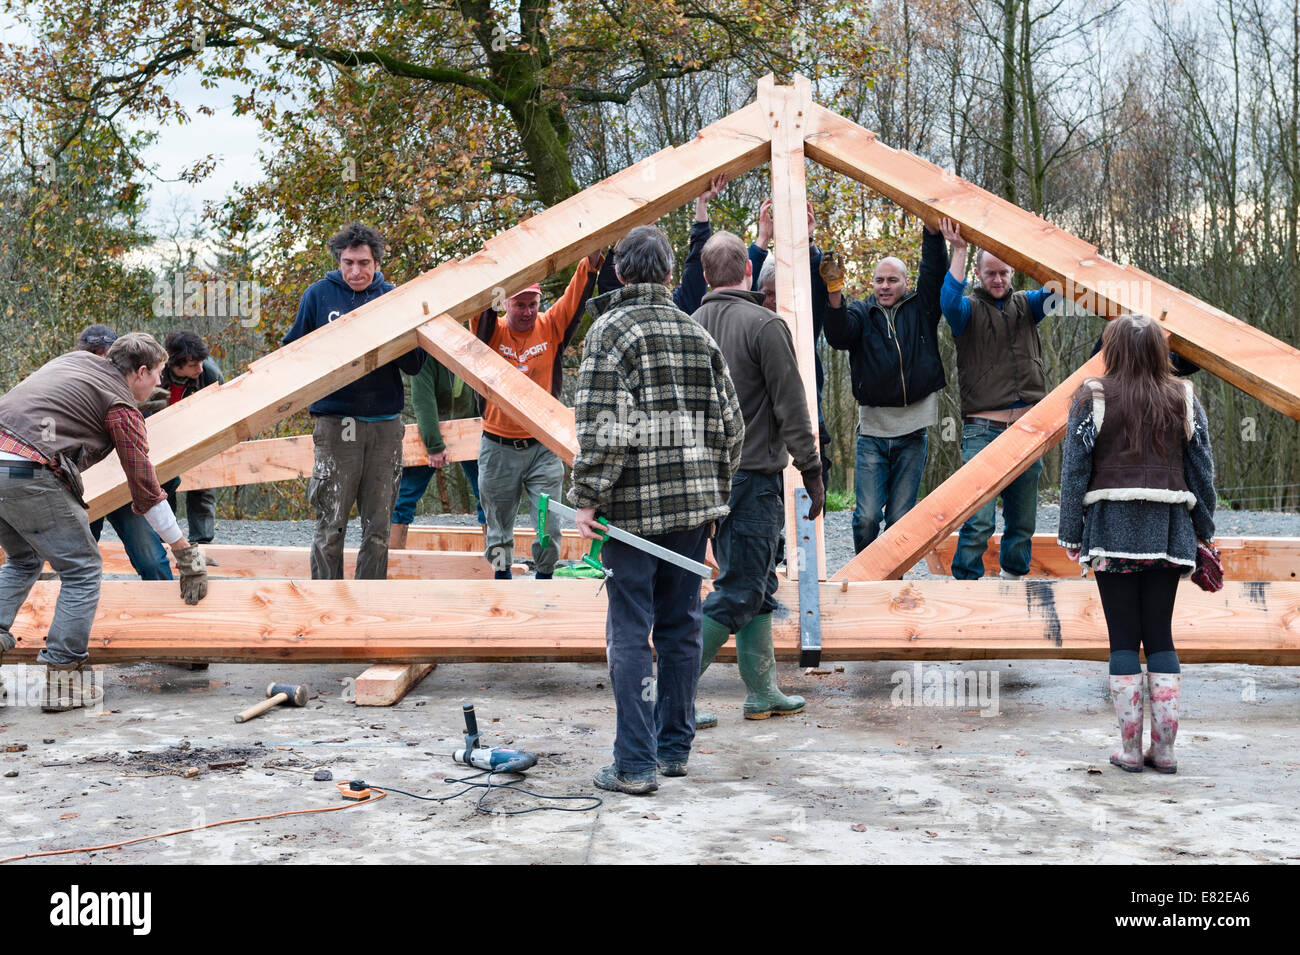 roof truss stockfotos roof truss bilder alamy. Black Bedroom Furniture Sets. Home Design Ideas